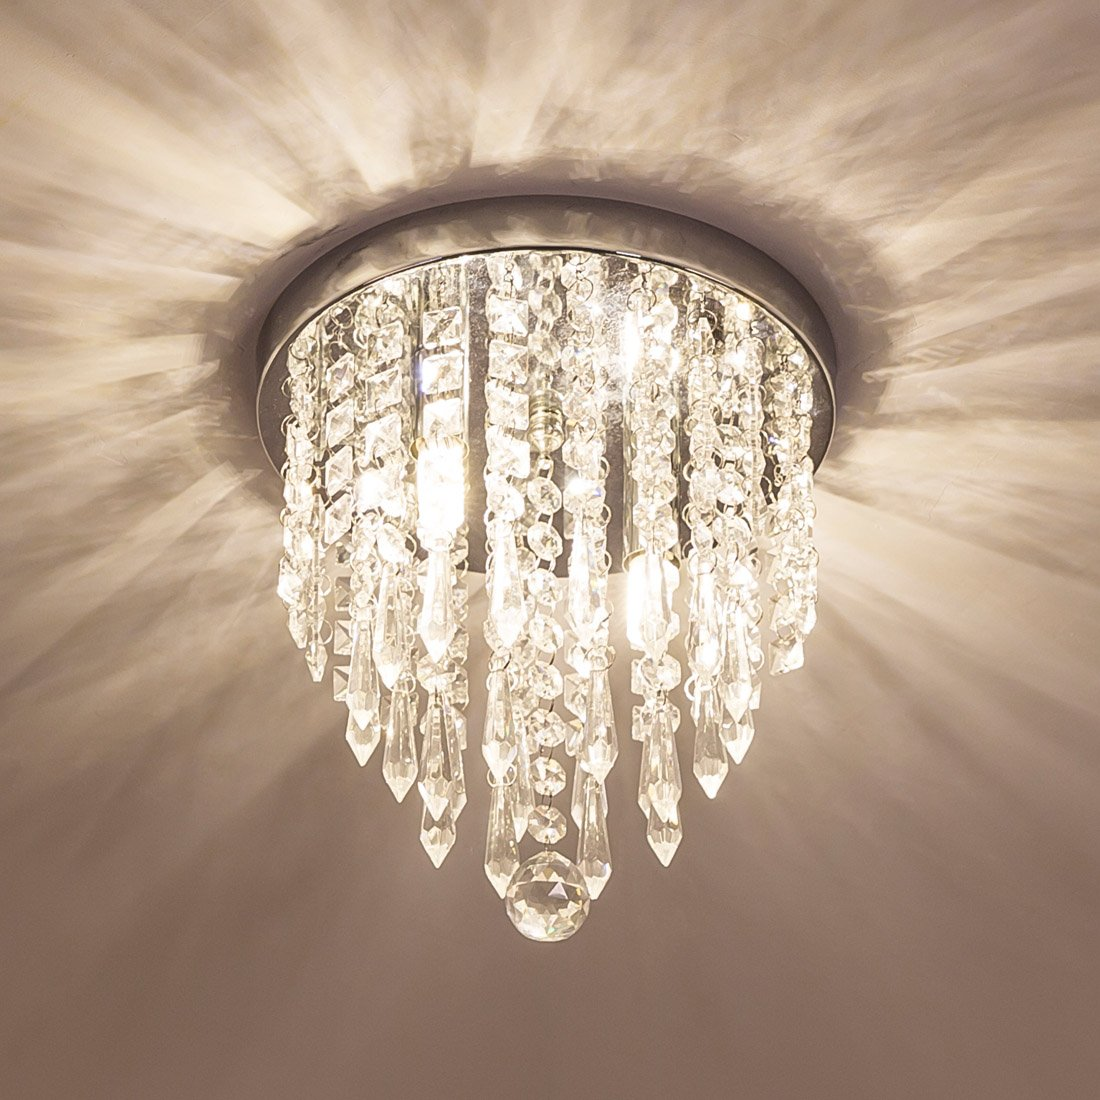 Lifeholder Mini Chandelier, Crystal Chandelier.